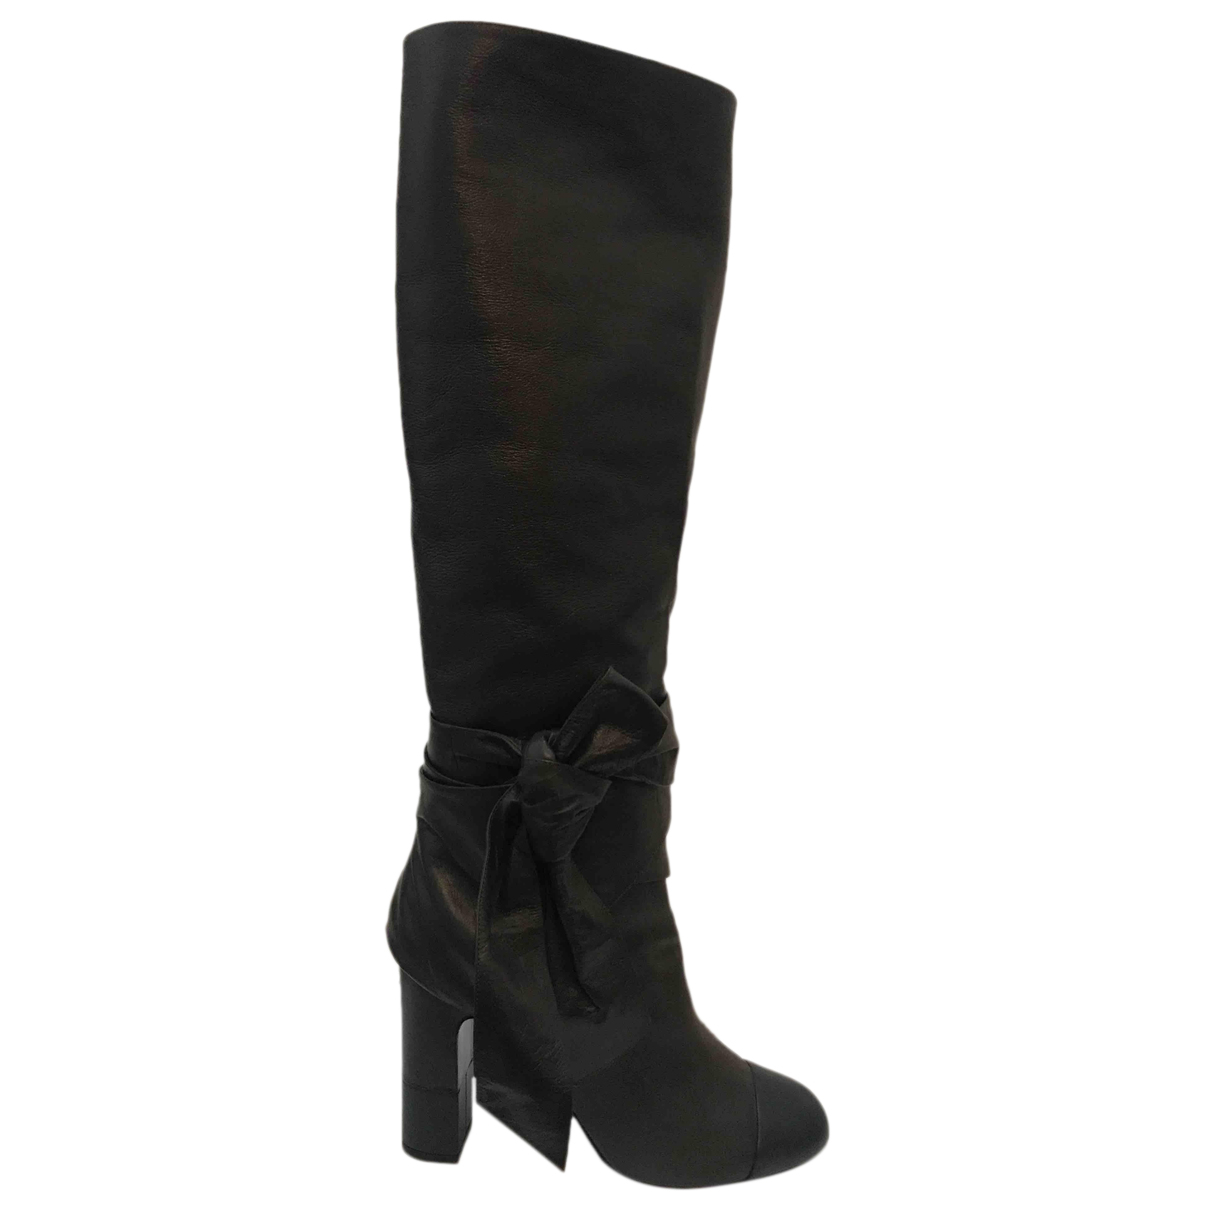 Chanel N Brown Leather Boots for Women 39 EU